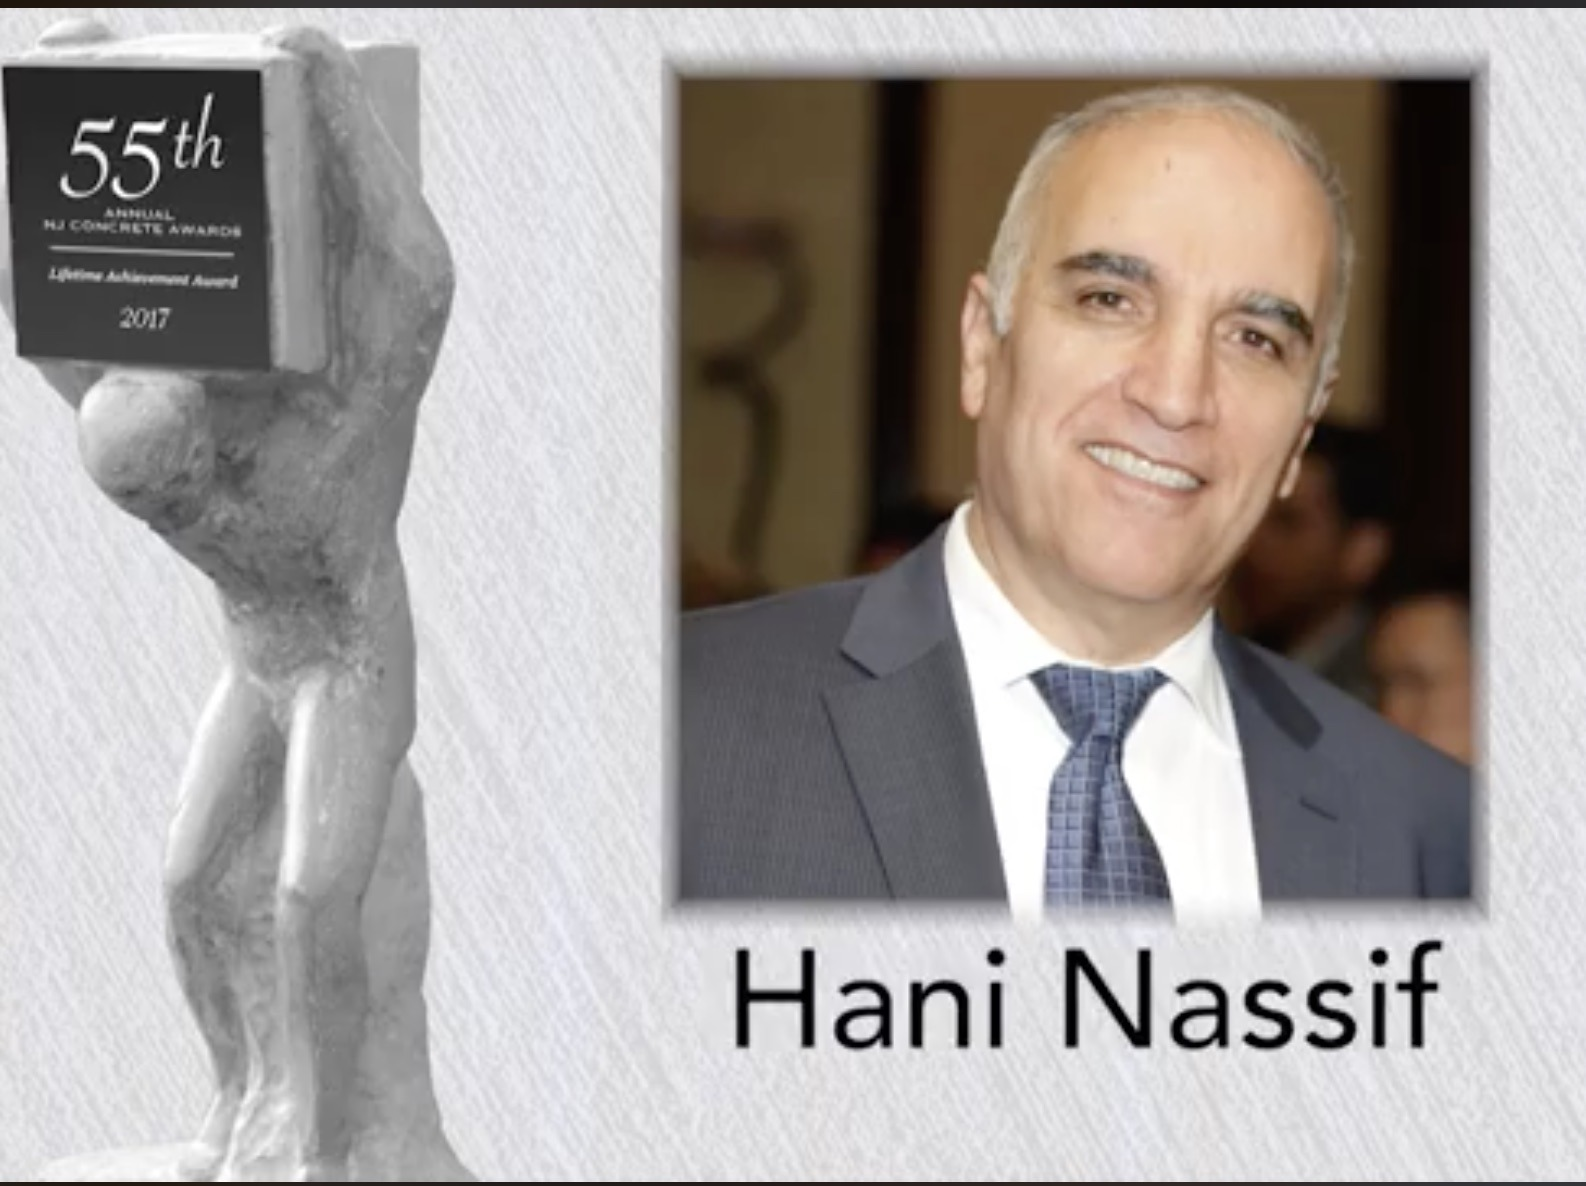 Hani Nassif lifetime achievement award